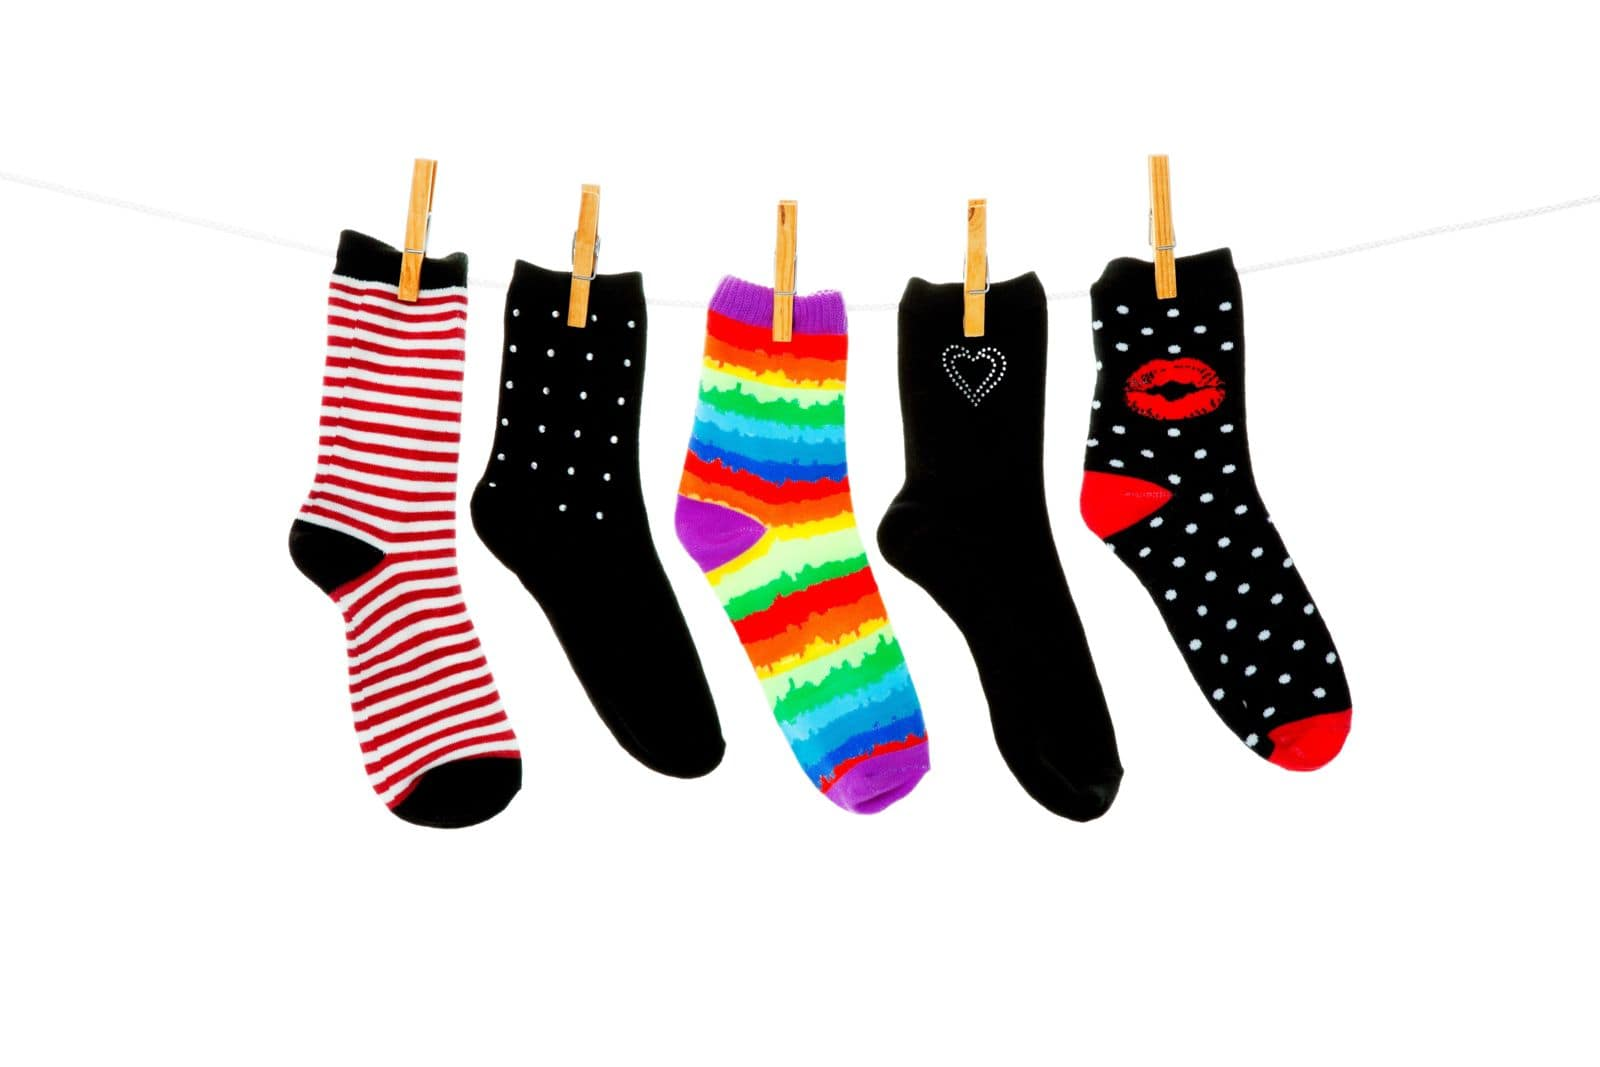 graphic image of socks hanging on a clothesline